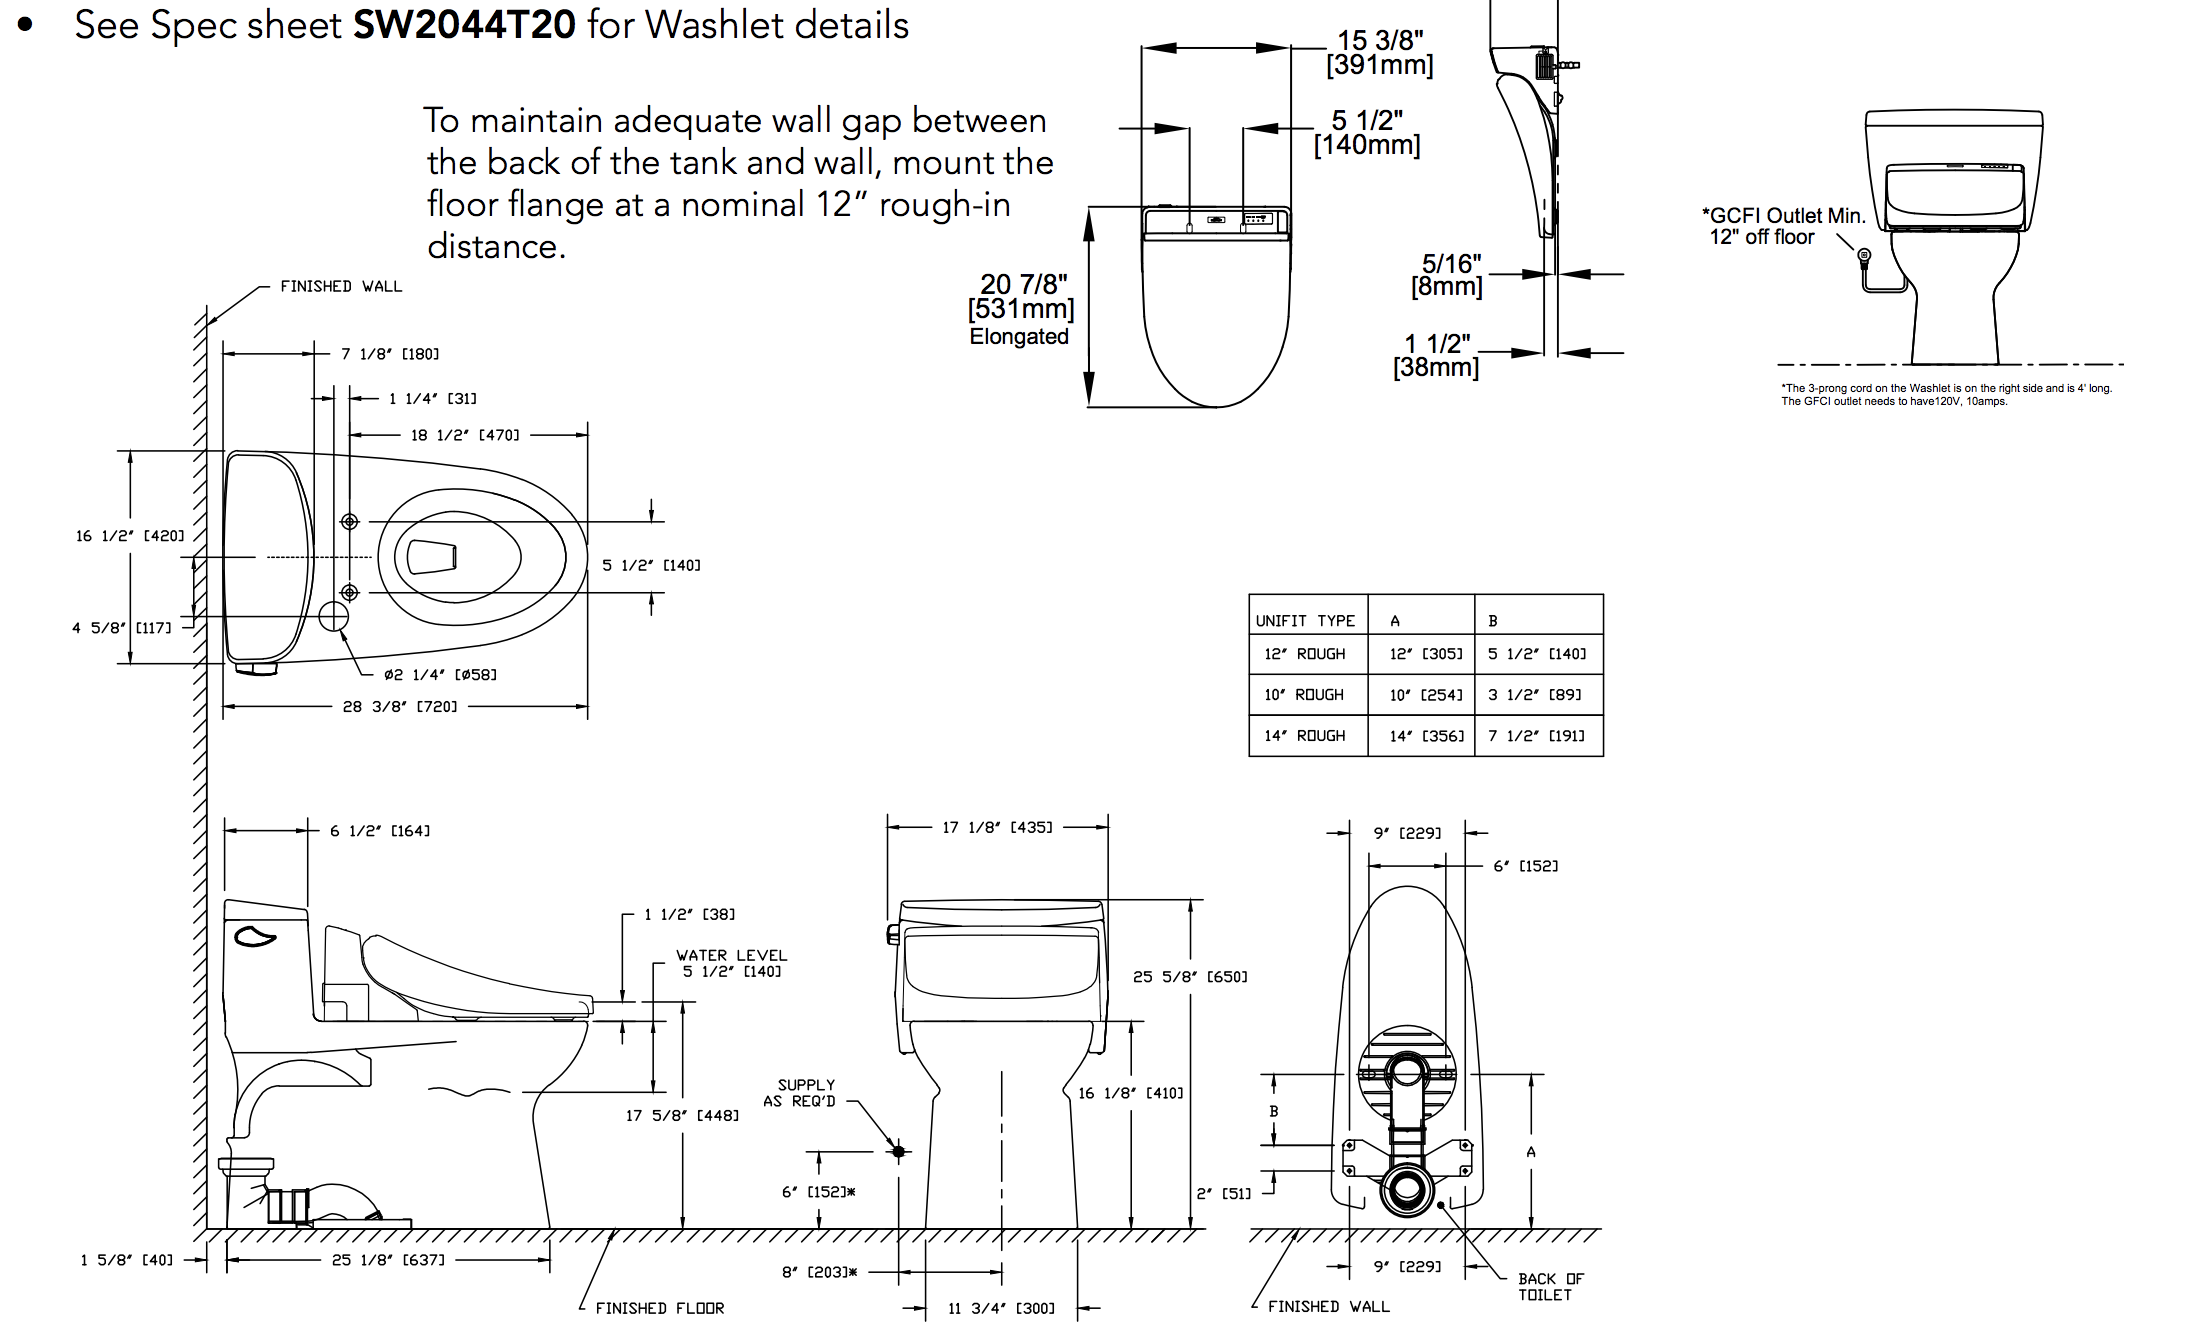 carolina-ii-washlet-c200-one-piece-toilet-1.28-gpf-diagram.png